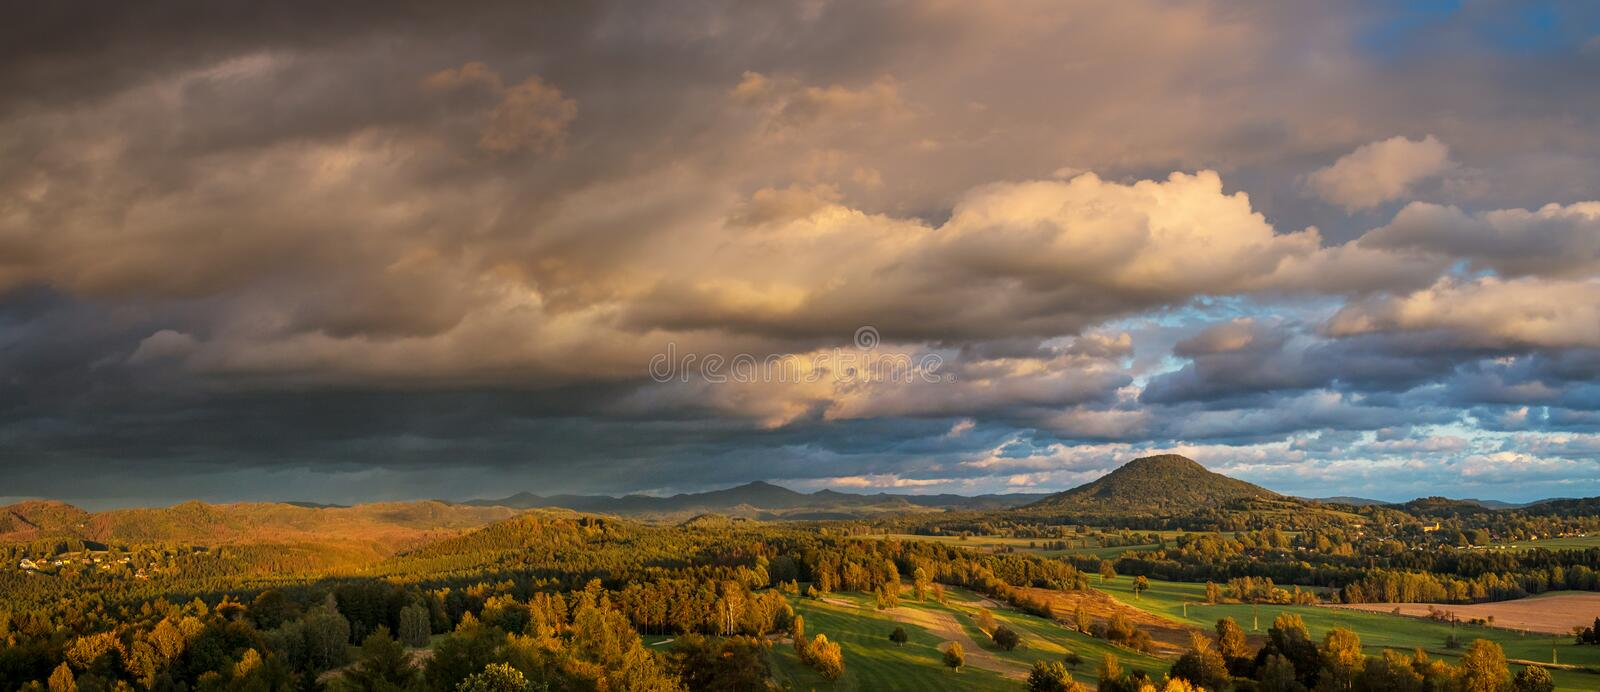 Autumn landscape at sunset - mountains, forests and beautiful clouds illuminated by the setting sun stock photos